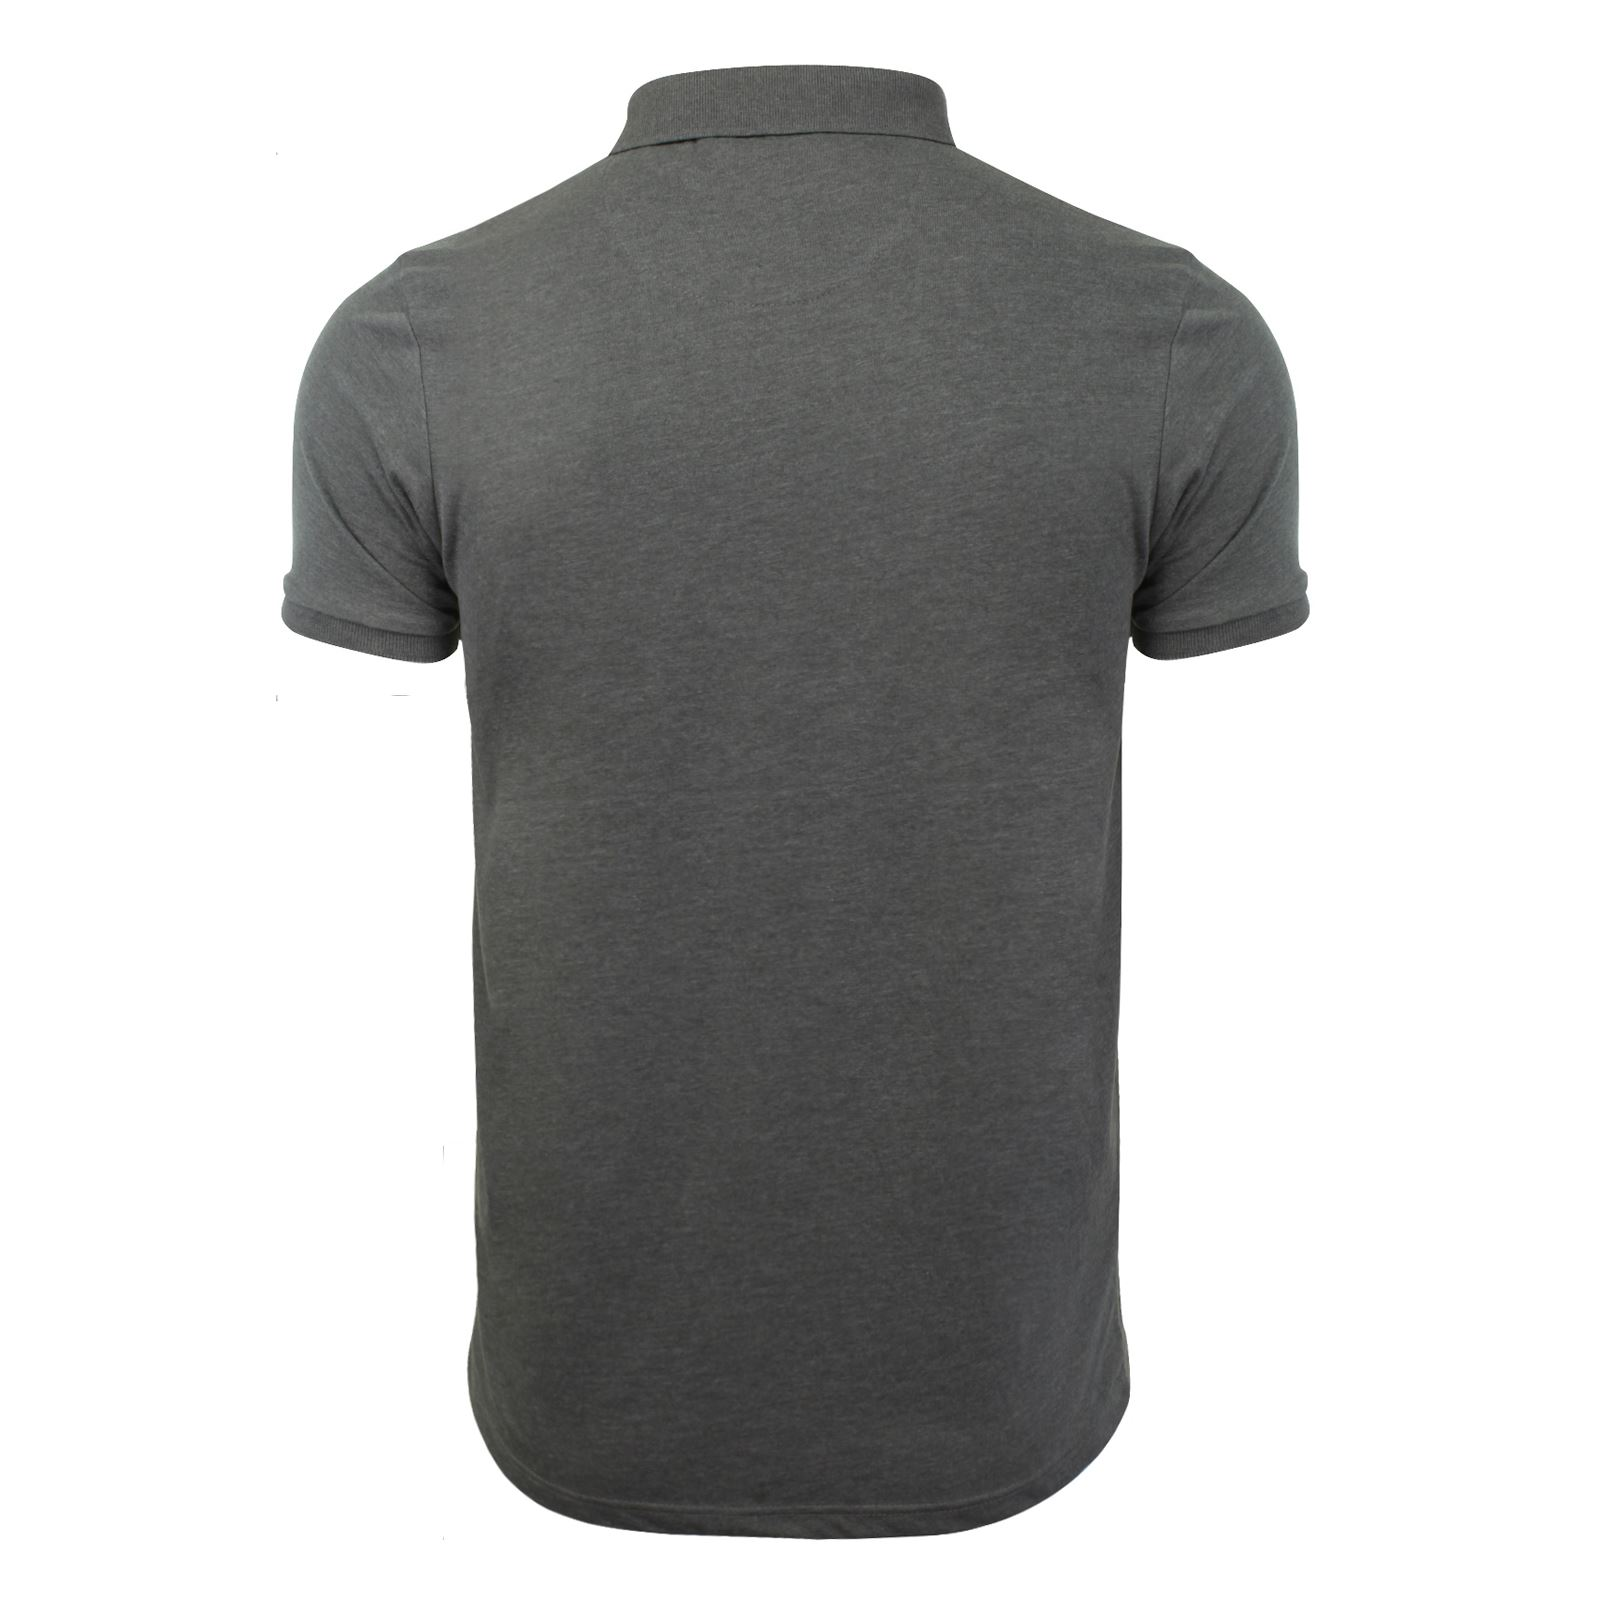 Mens-Polo-T-Shirt-Brave-Soul-Glover-Cotton-Collared-Short-Sleeve-Casual-Top thumbnail 82